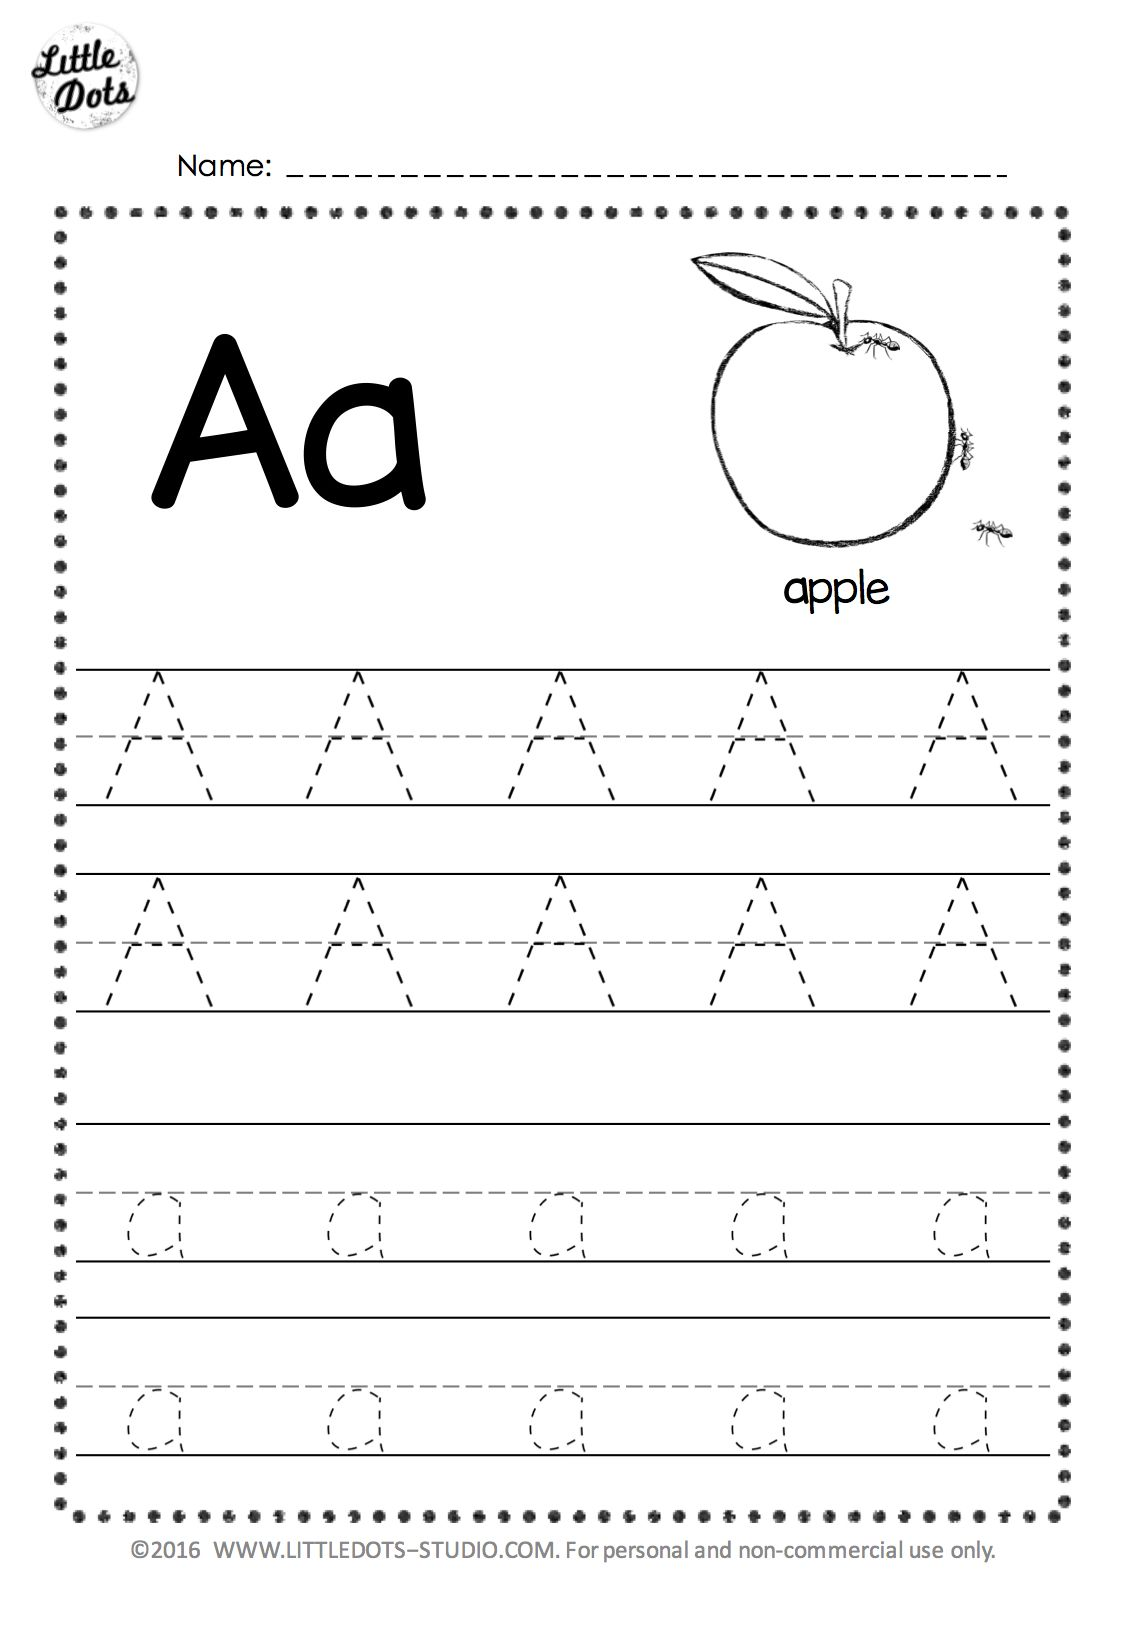 Download Free Letter A Tracing Worksheets For Preschool Pre K Or Kindergarten Class There Are